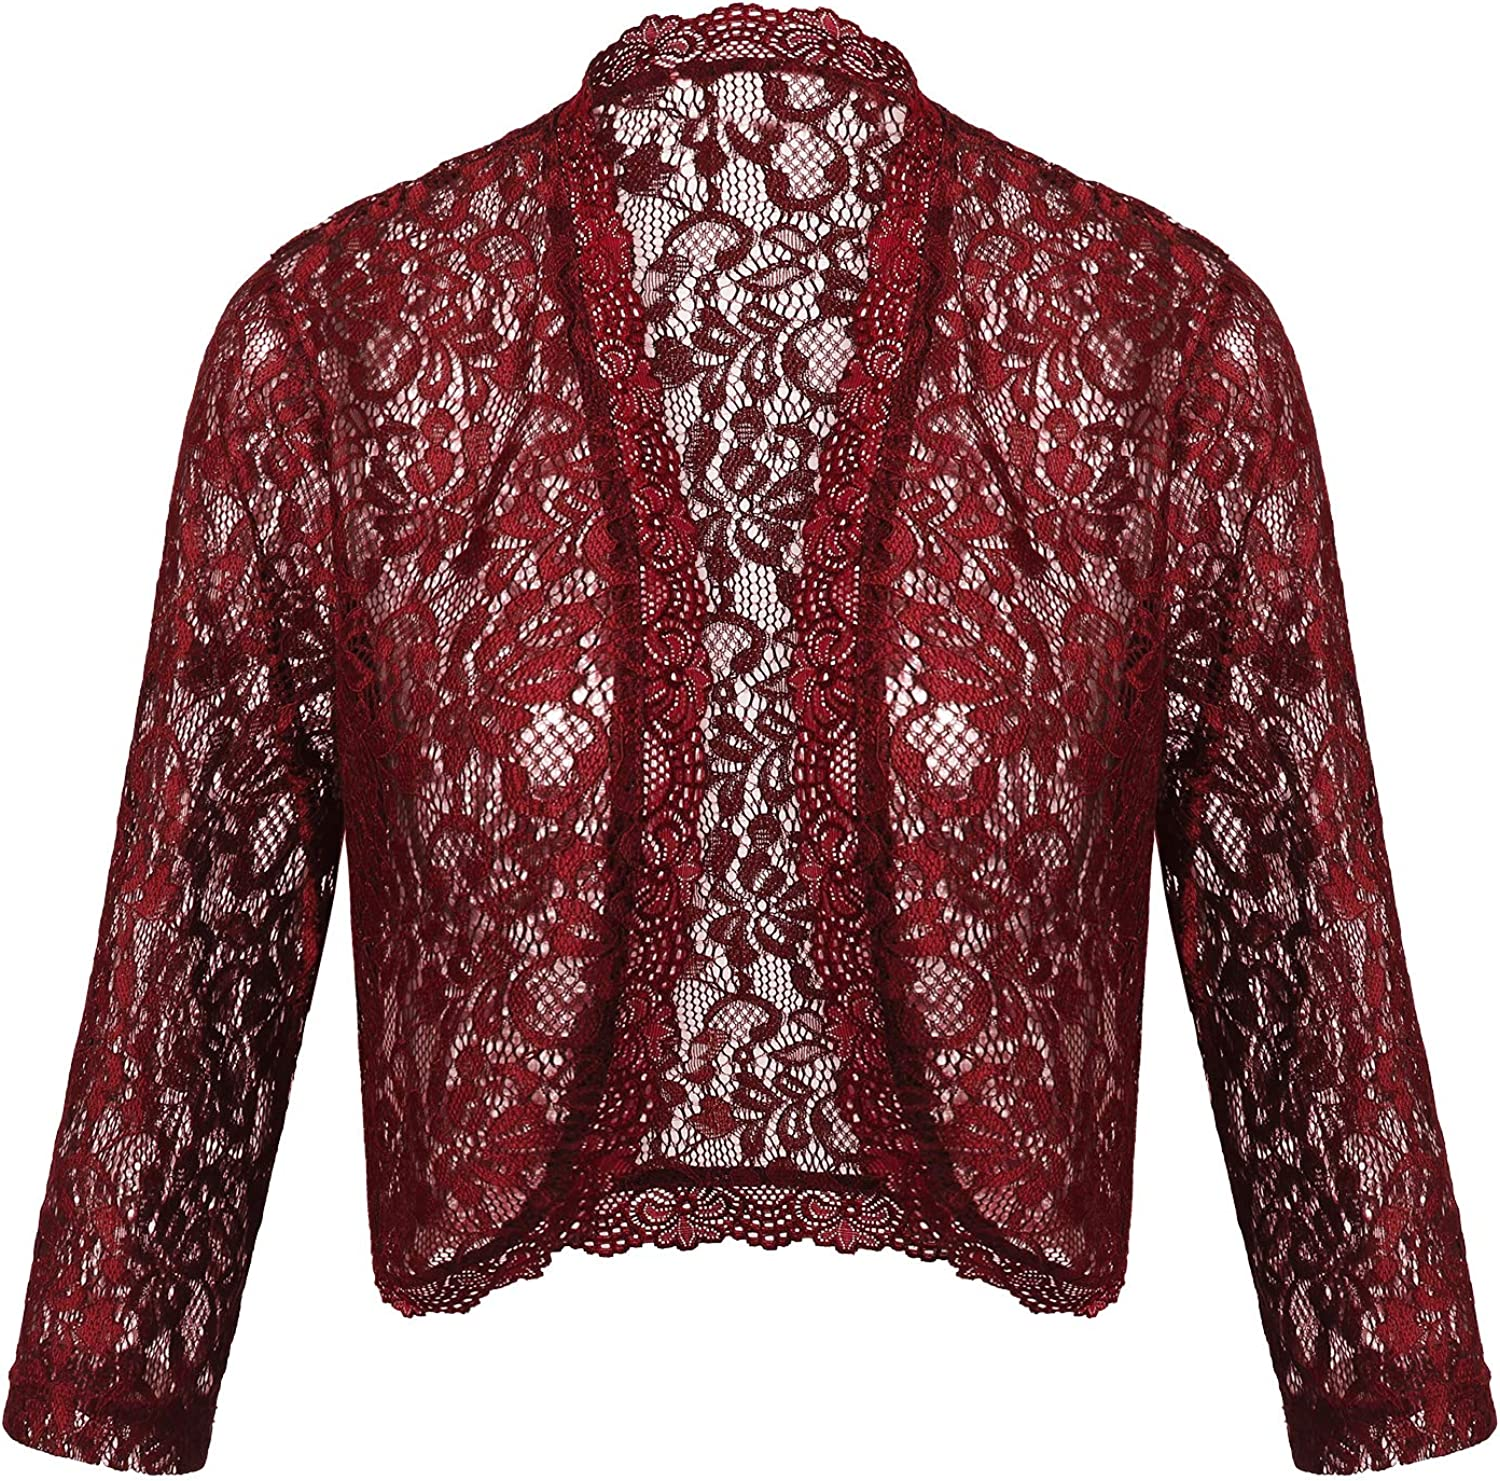 Dealwell Women's Floral Lace Cropped Shrug Bolero 3 4 Sleeve Open Front Cardigan